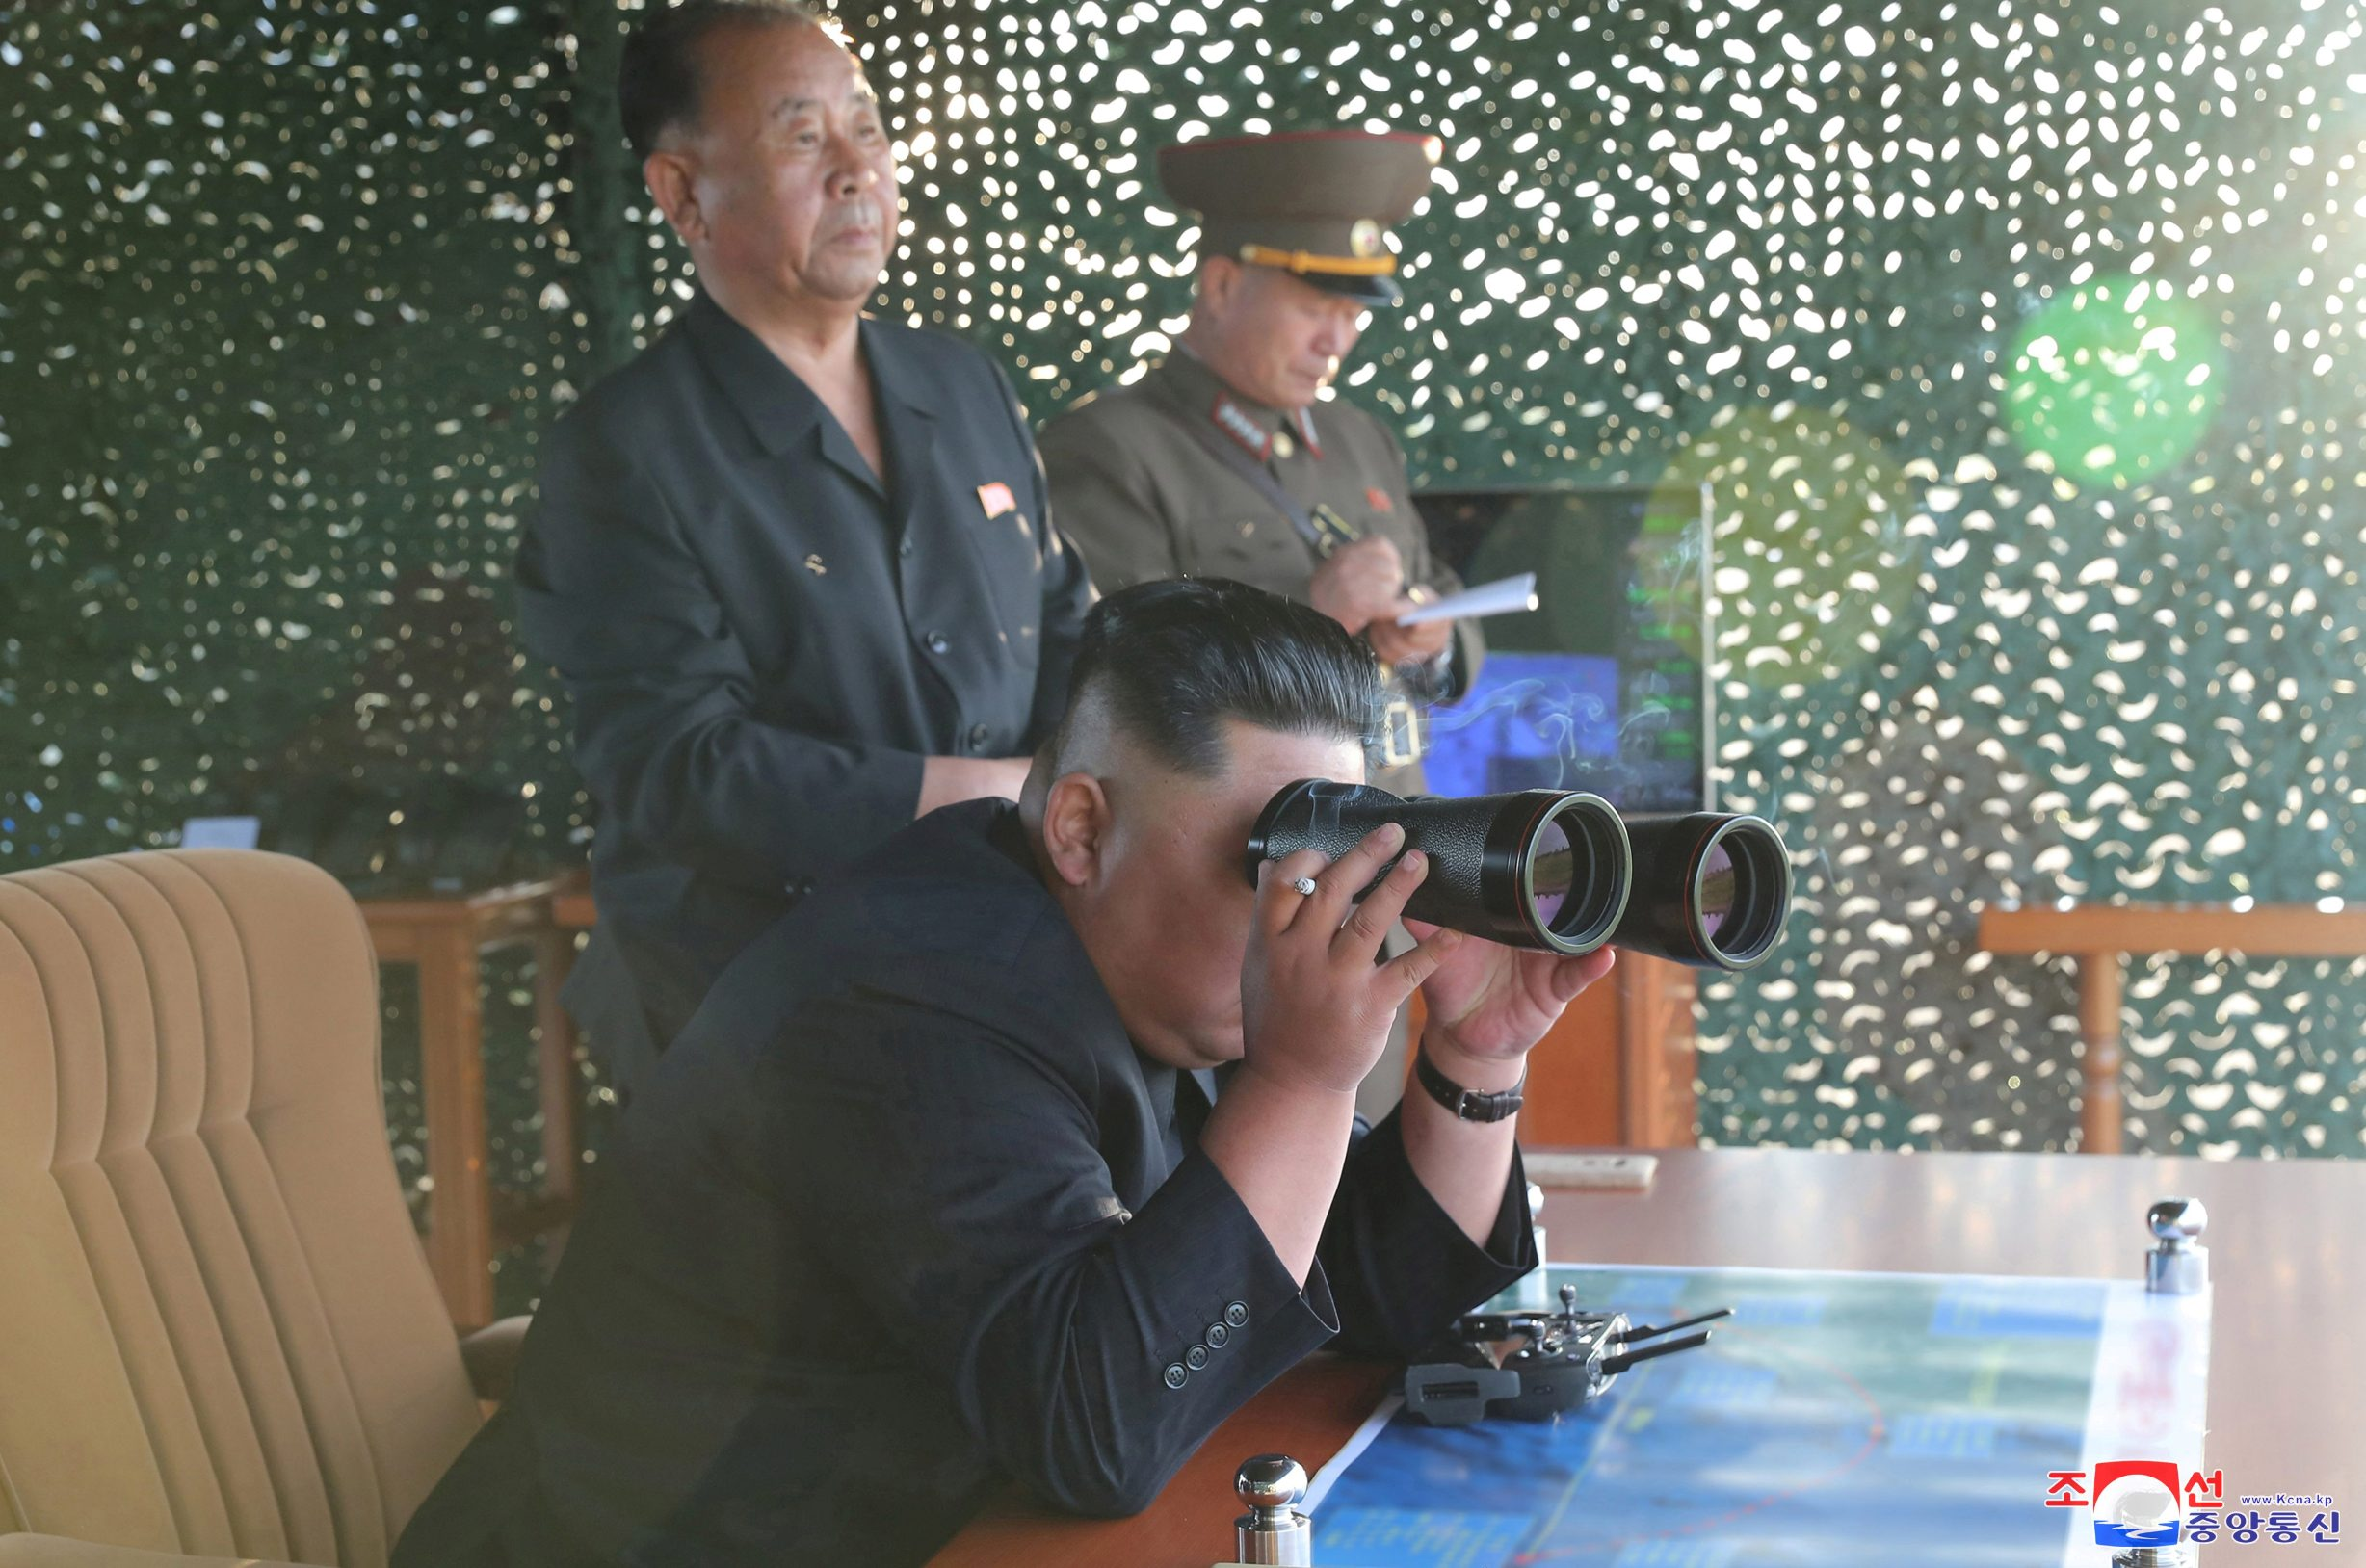 North Korean leader Kim Jong Un attends the test of a multiple rocket launcher in this undated photo released on August 25, 2019 by North Korea's Korean Central News Agency (KCNA). KCNA via REUTERS ATTENTION EDITORS - THIS IMAGE WAS PROVIDED BY A THIRD PARTY. REUTERS IS UNABLE TO INDEPENDENTLY VERIFY THIS IMAGE. NO THIRD PARTY SALES. SOUTH KOREA OUT. NO COMMERCIAL OR EDITORIAL SALES IN SOUTH KOREA.     TPX IMAGES OF THE DAY